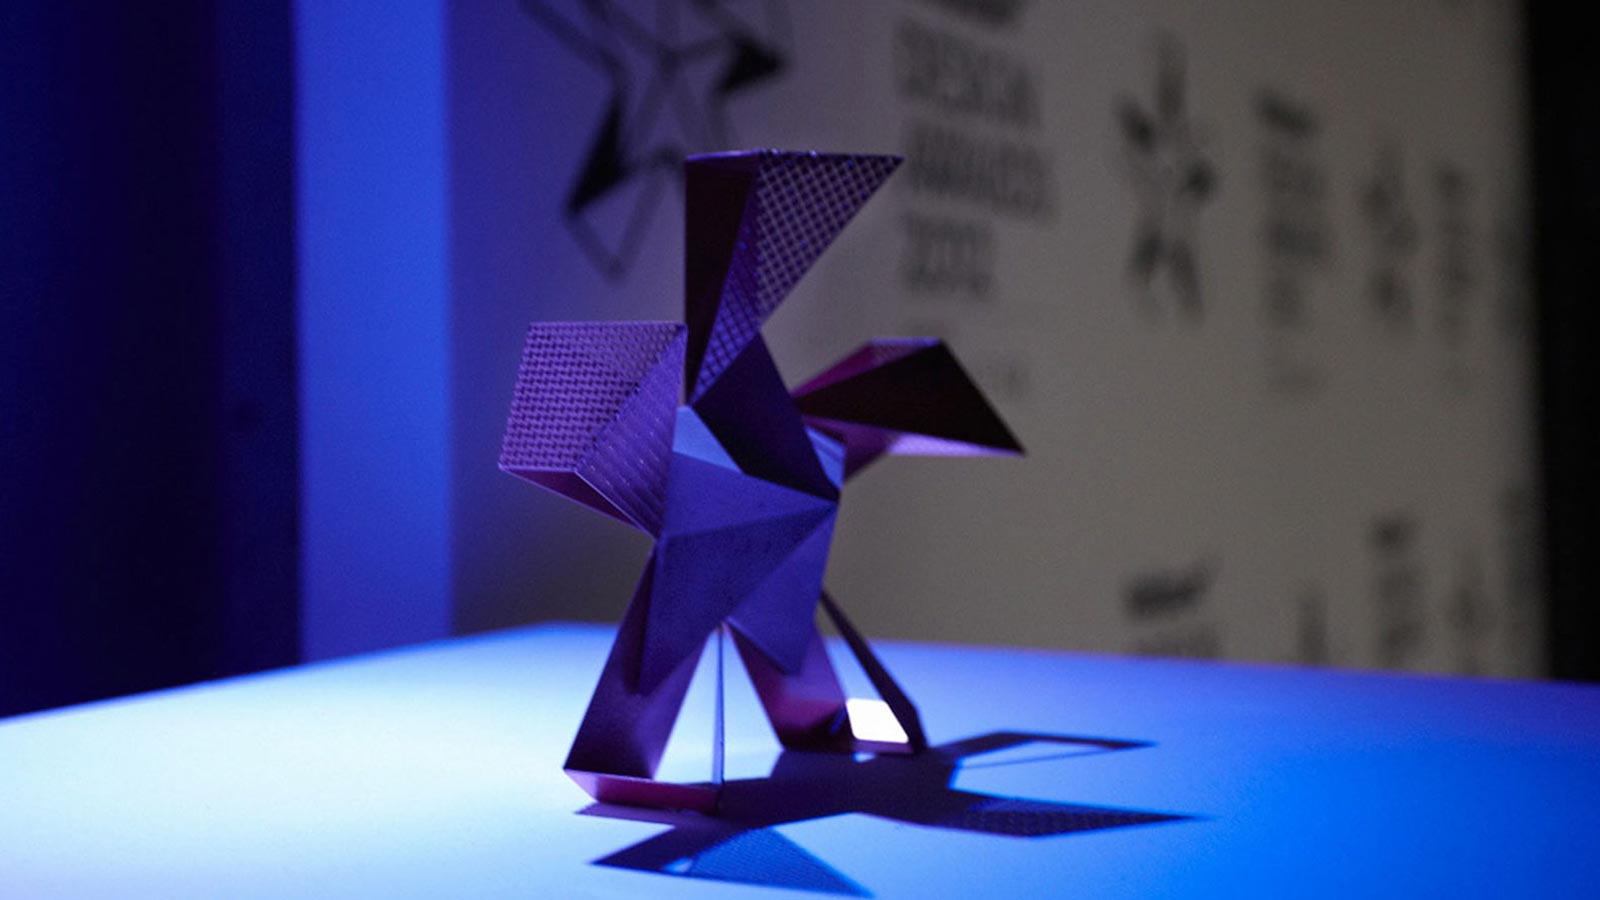 A star-like structure in a blue light on display at the Wallpaper* Handmade Exhibition.